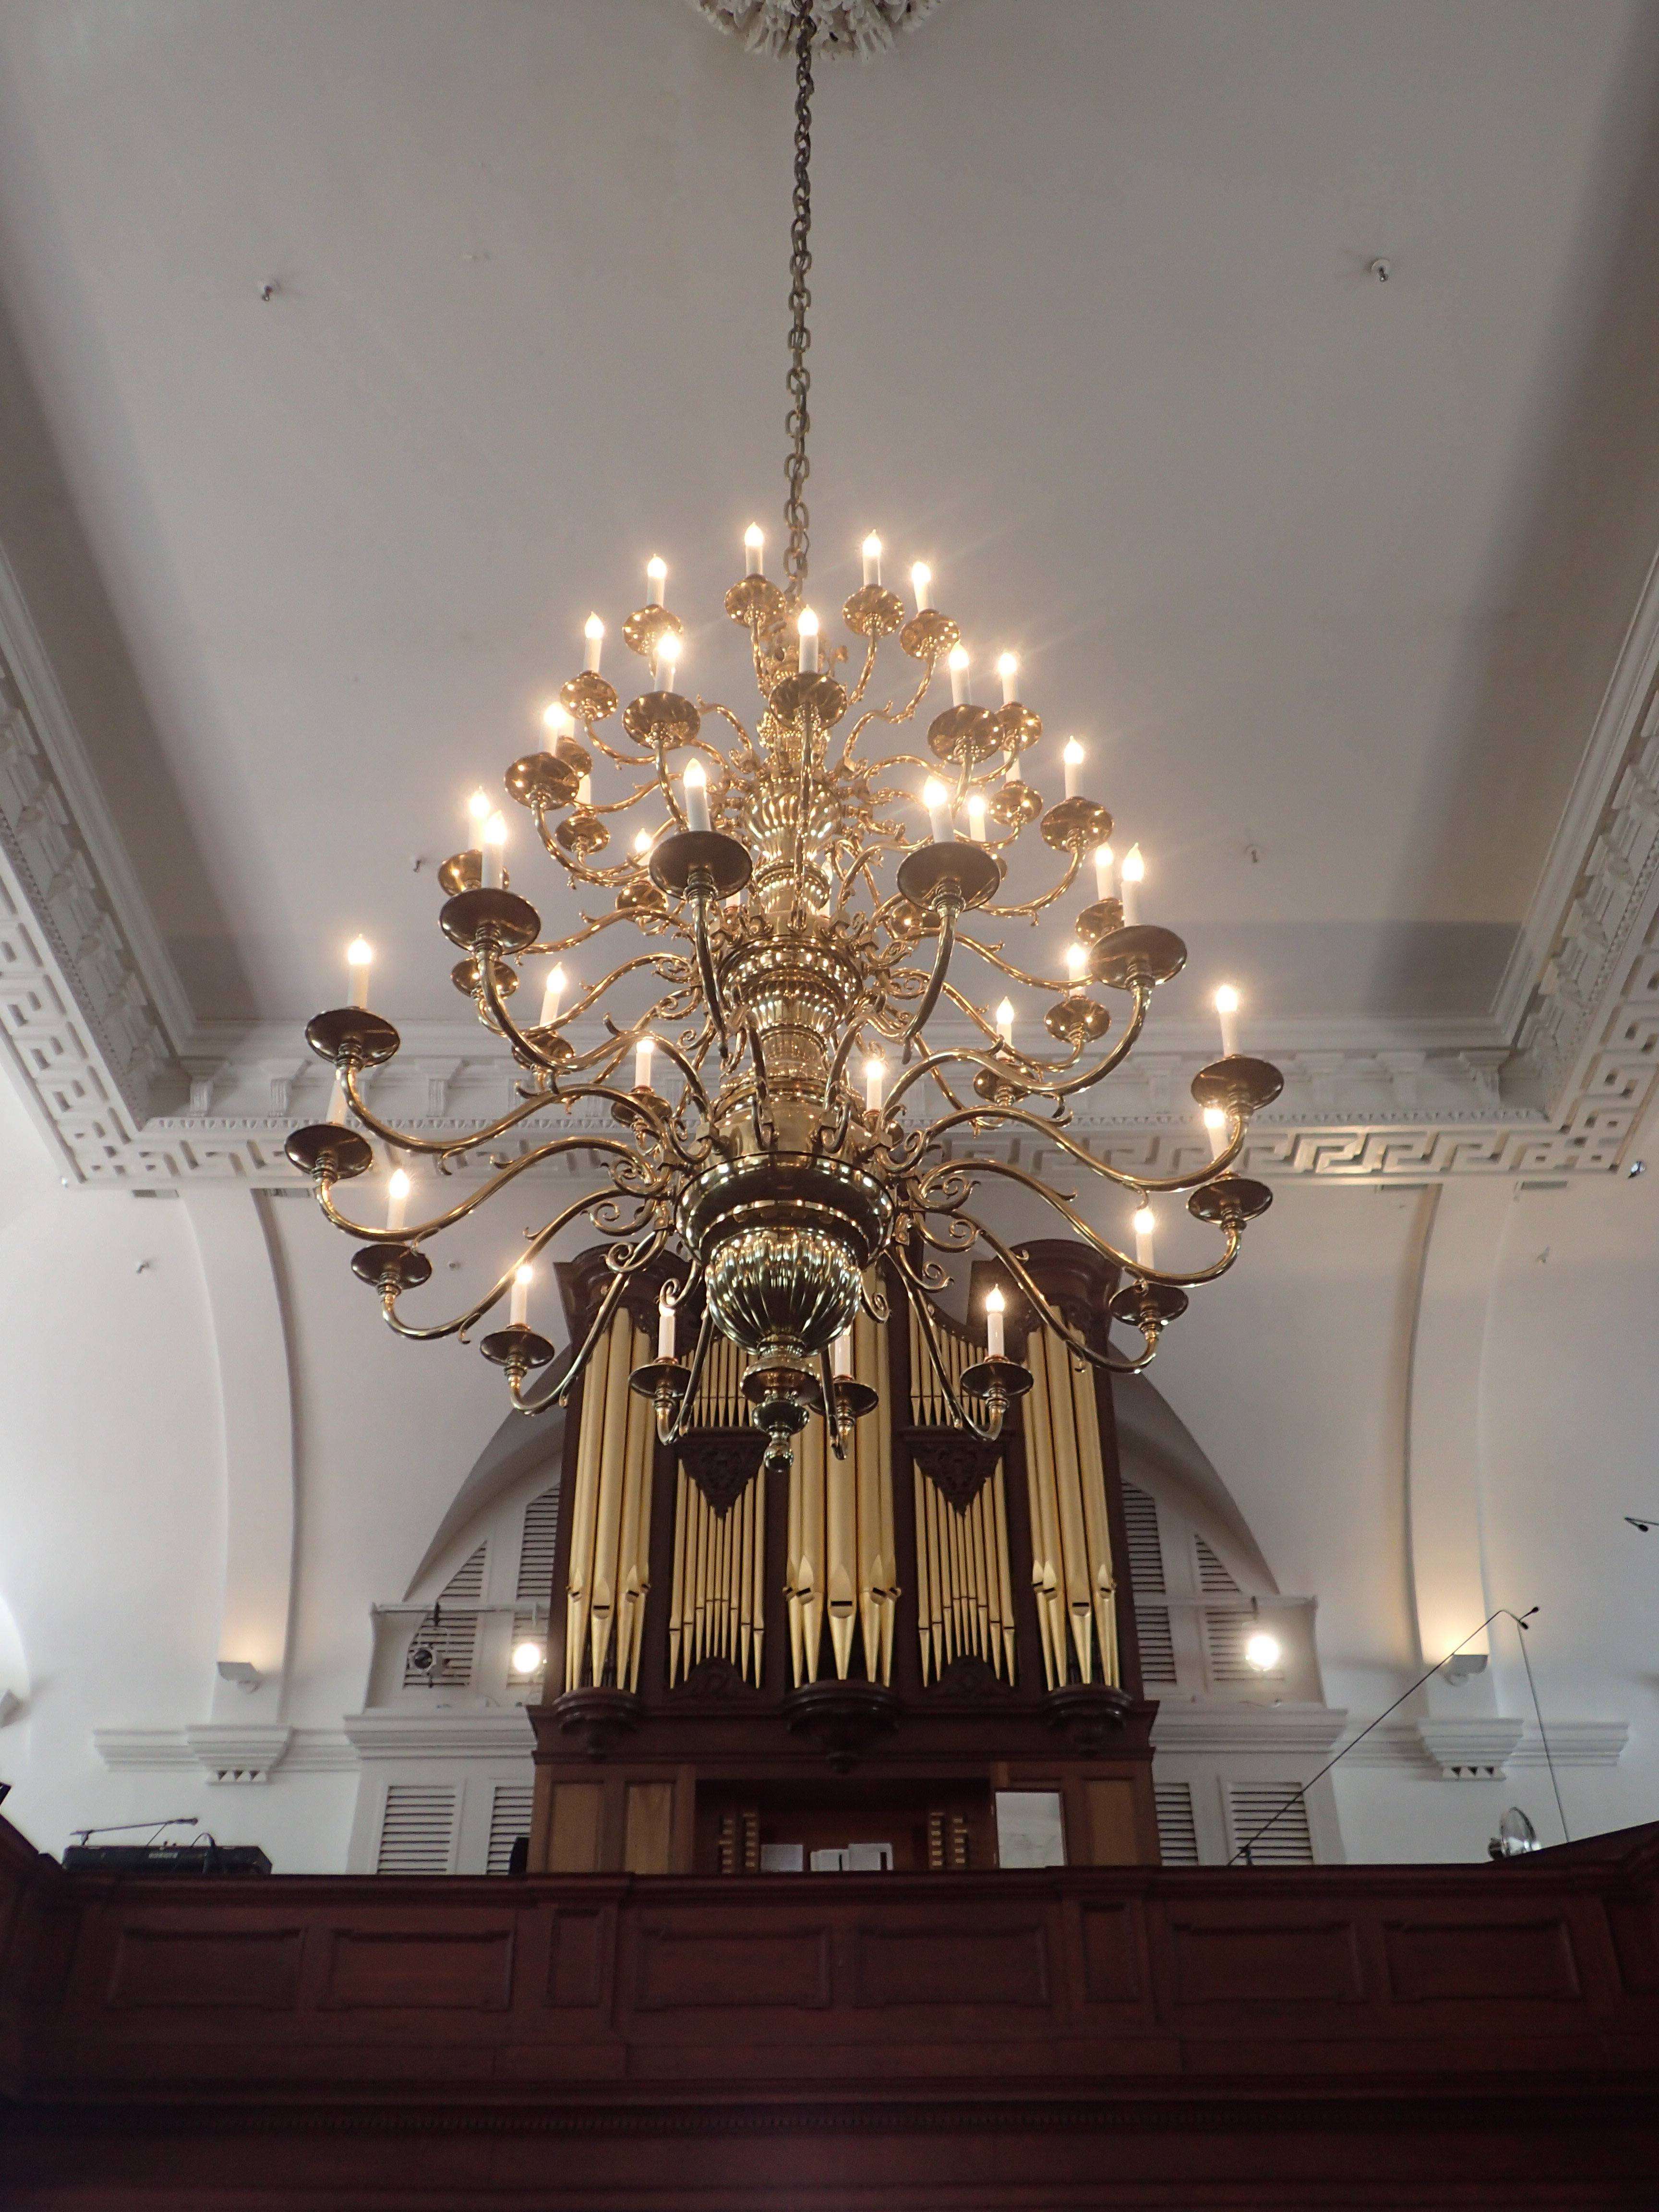 Chandelier and Pipe Organ St Michael's Episcopal Church Charleston